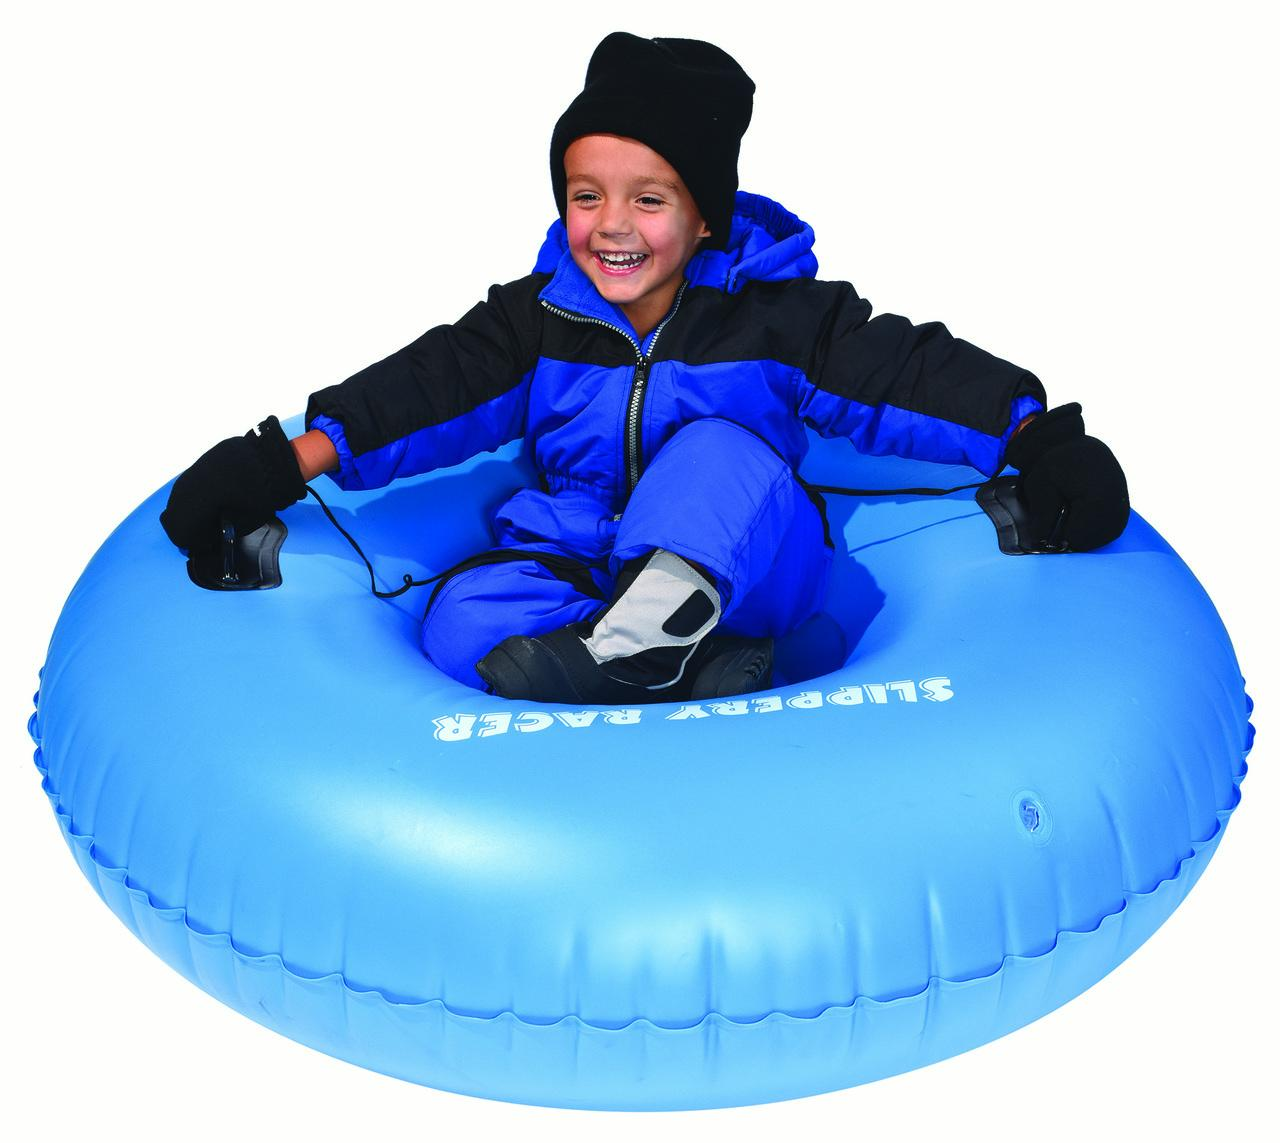 "Slippery Racer AirRaid 48"" Snow Tube Sled by Slippery Racer"